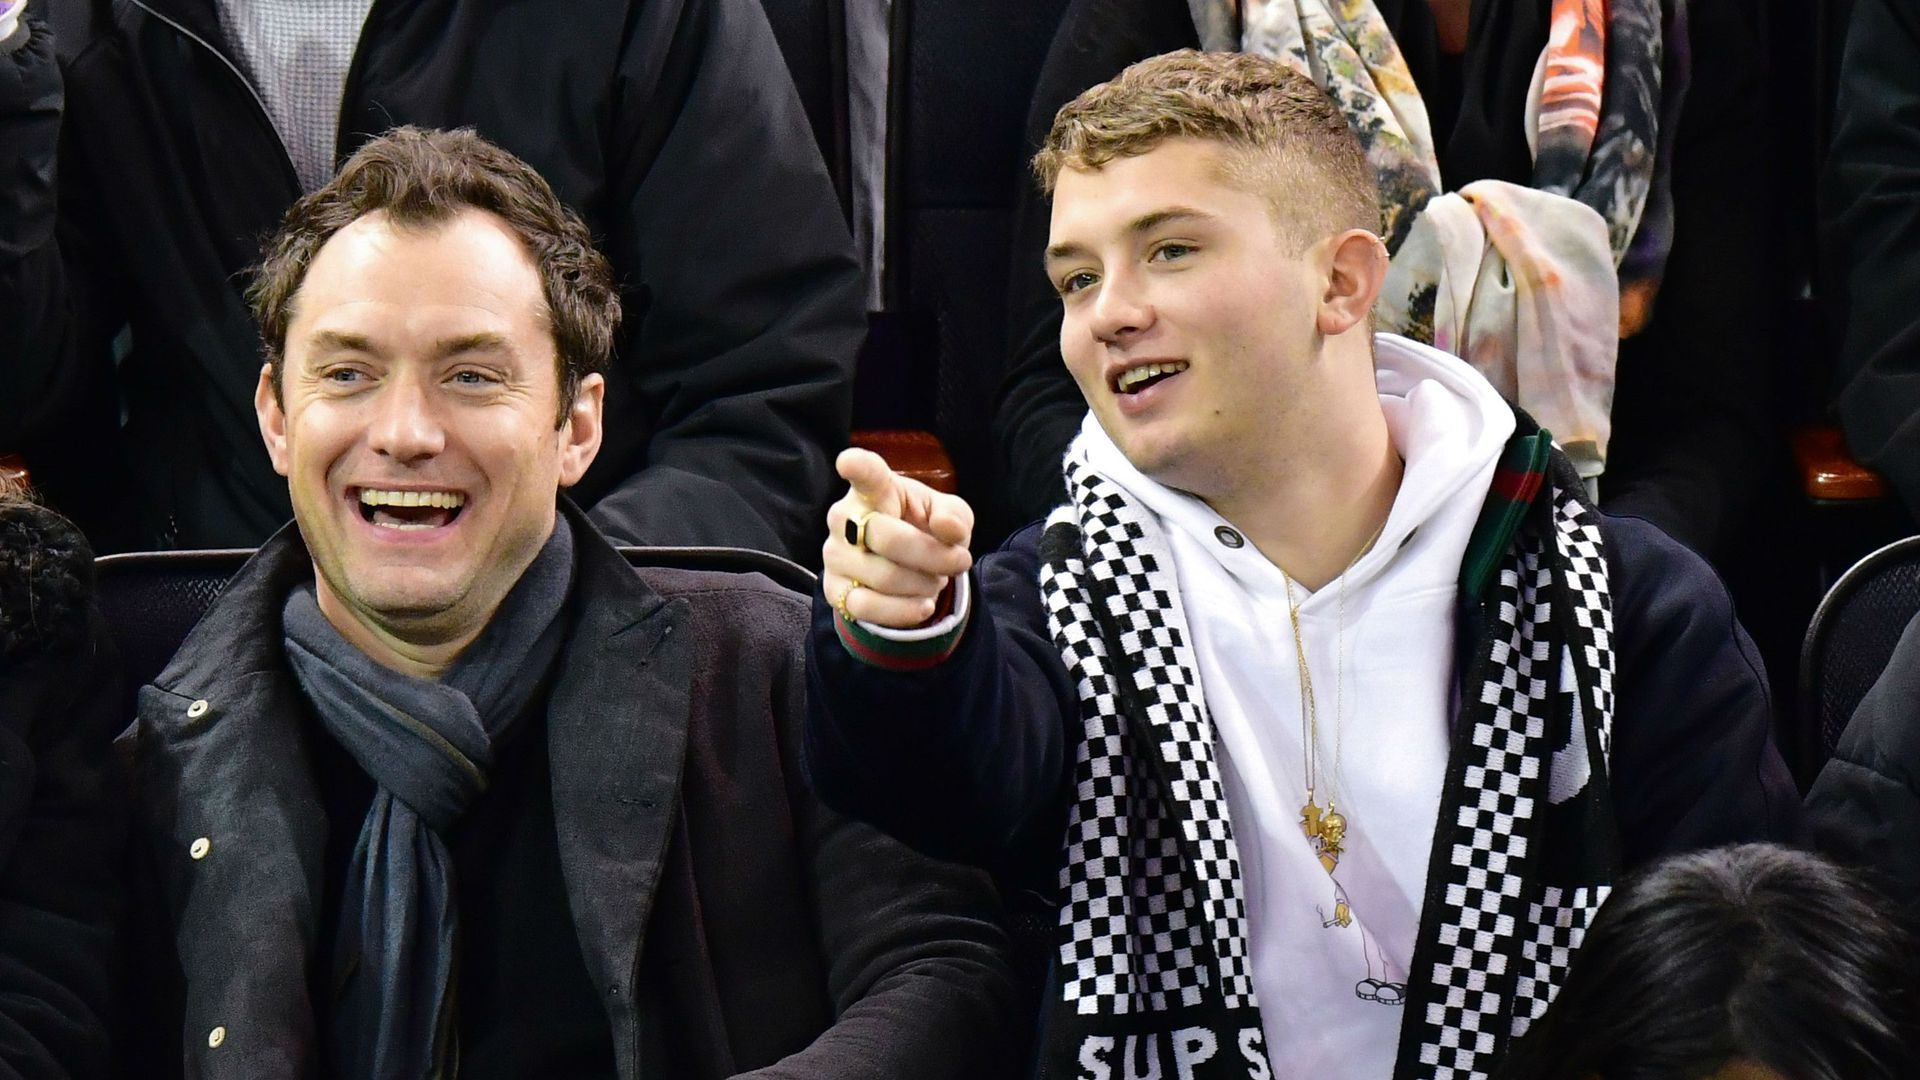 Actor Jude Law with his son Rafferty Law